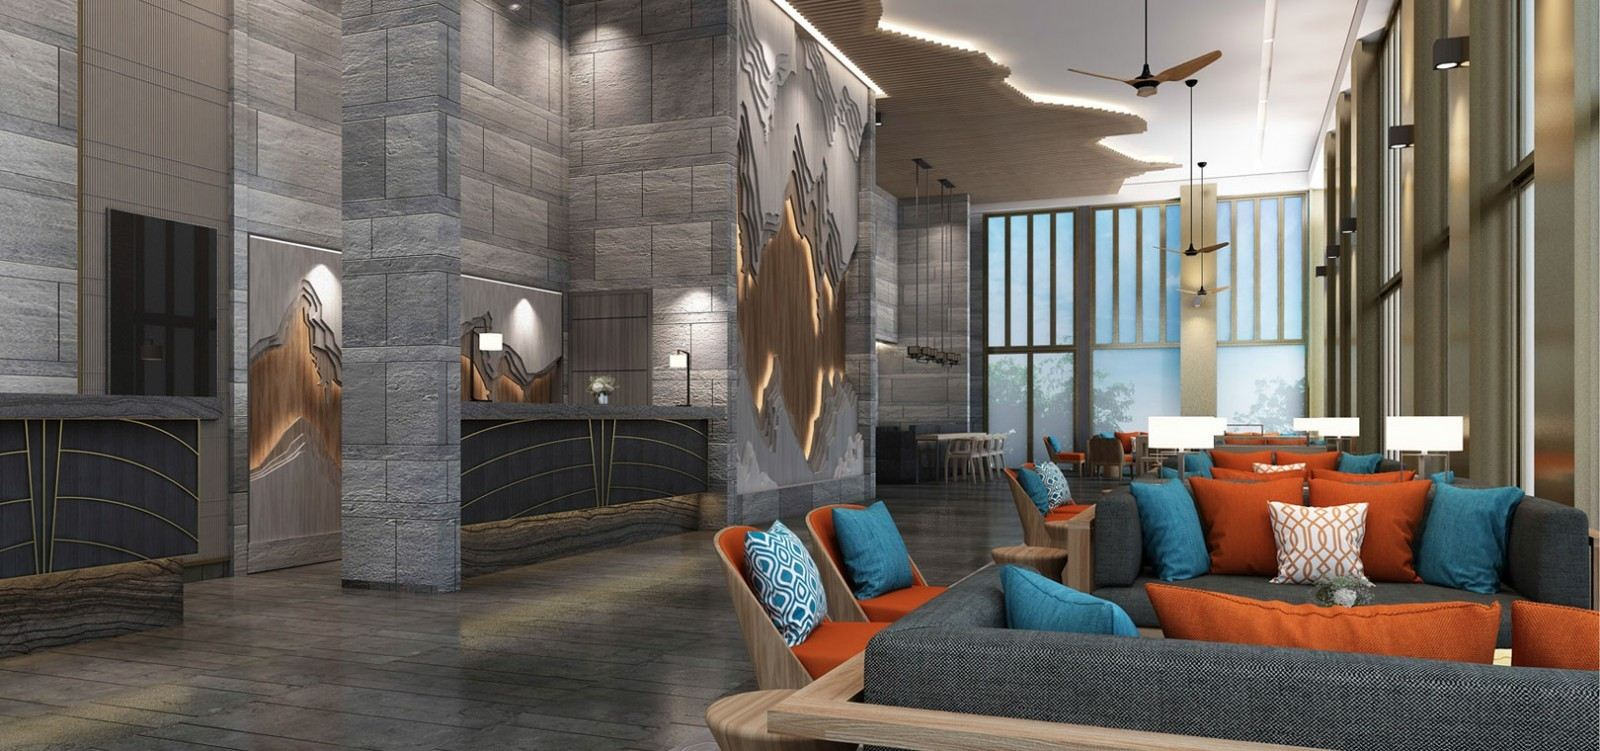 A new dusitD2 opening in Krabi later this year | The Thaiger